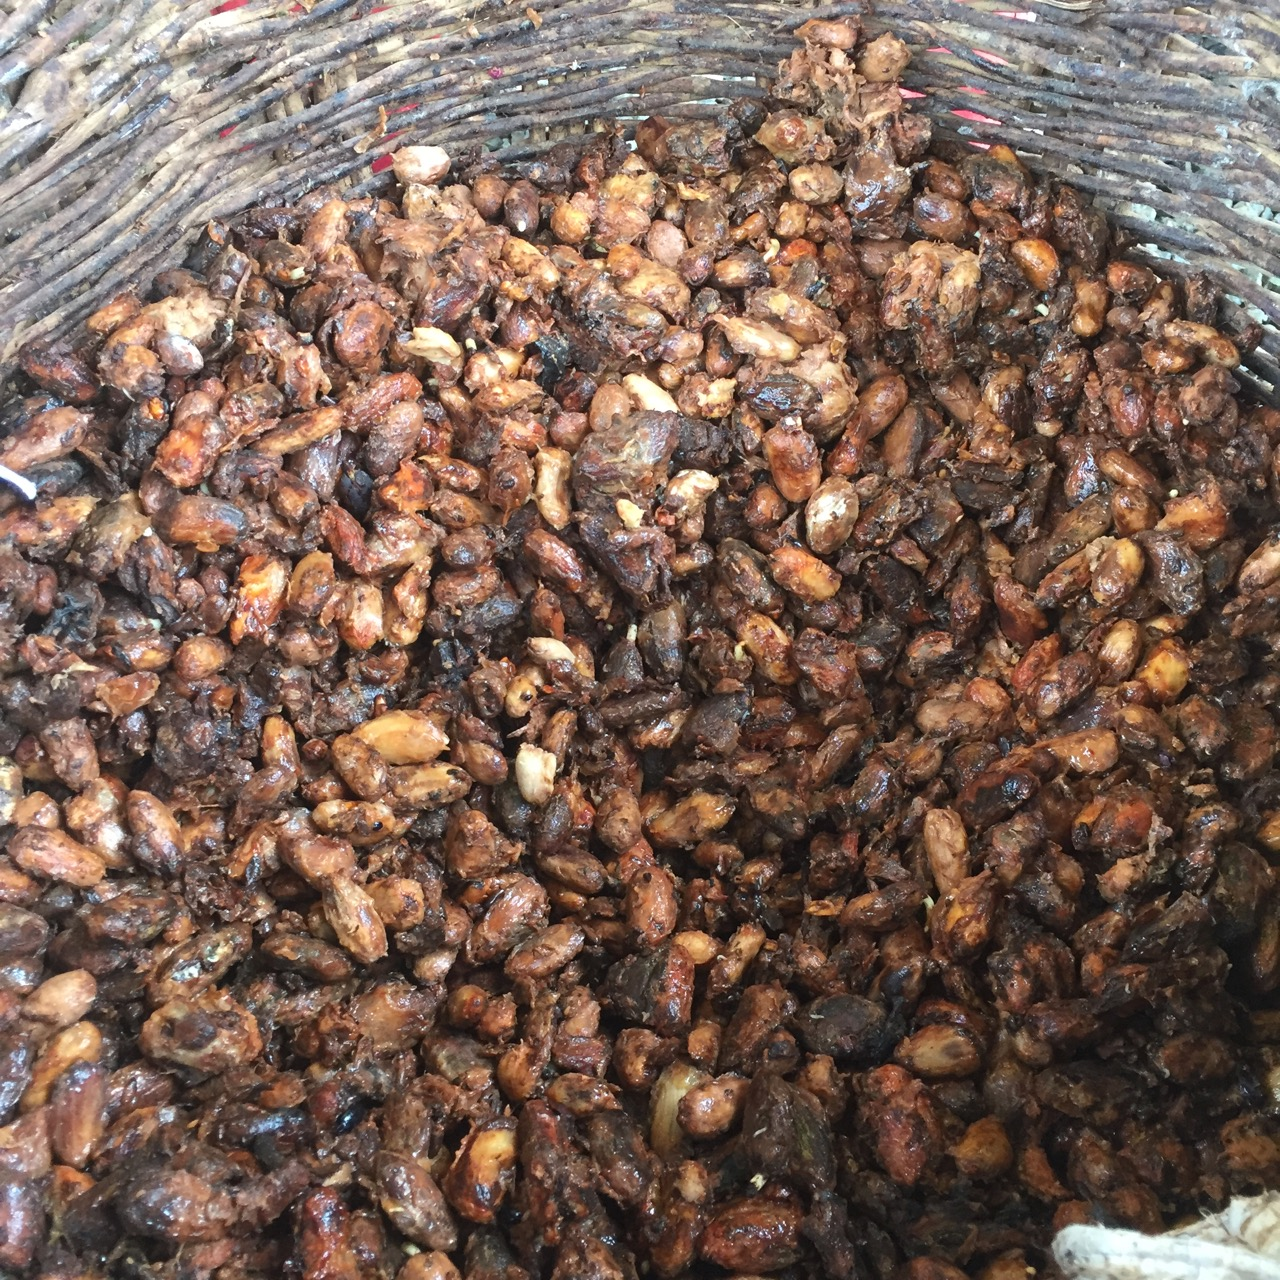 Beans infected with witches' broom being fermented, photo by Baiani Chocolate